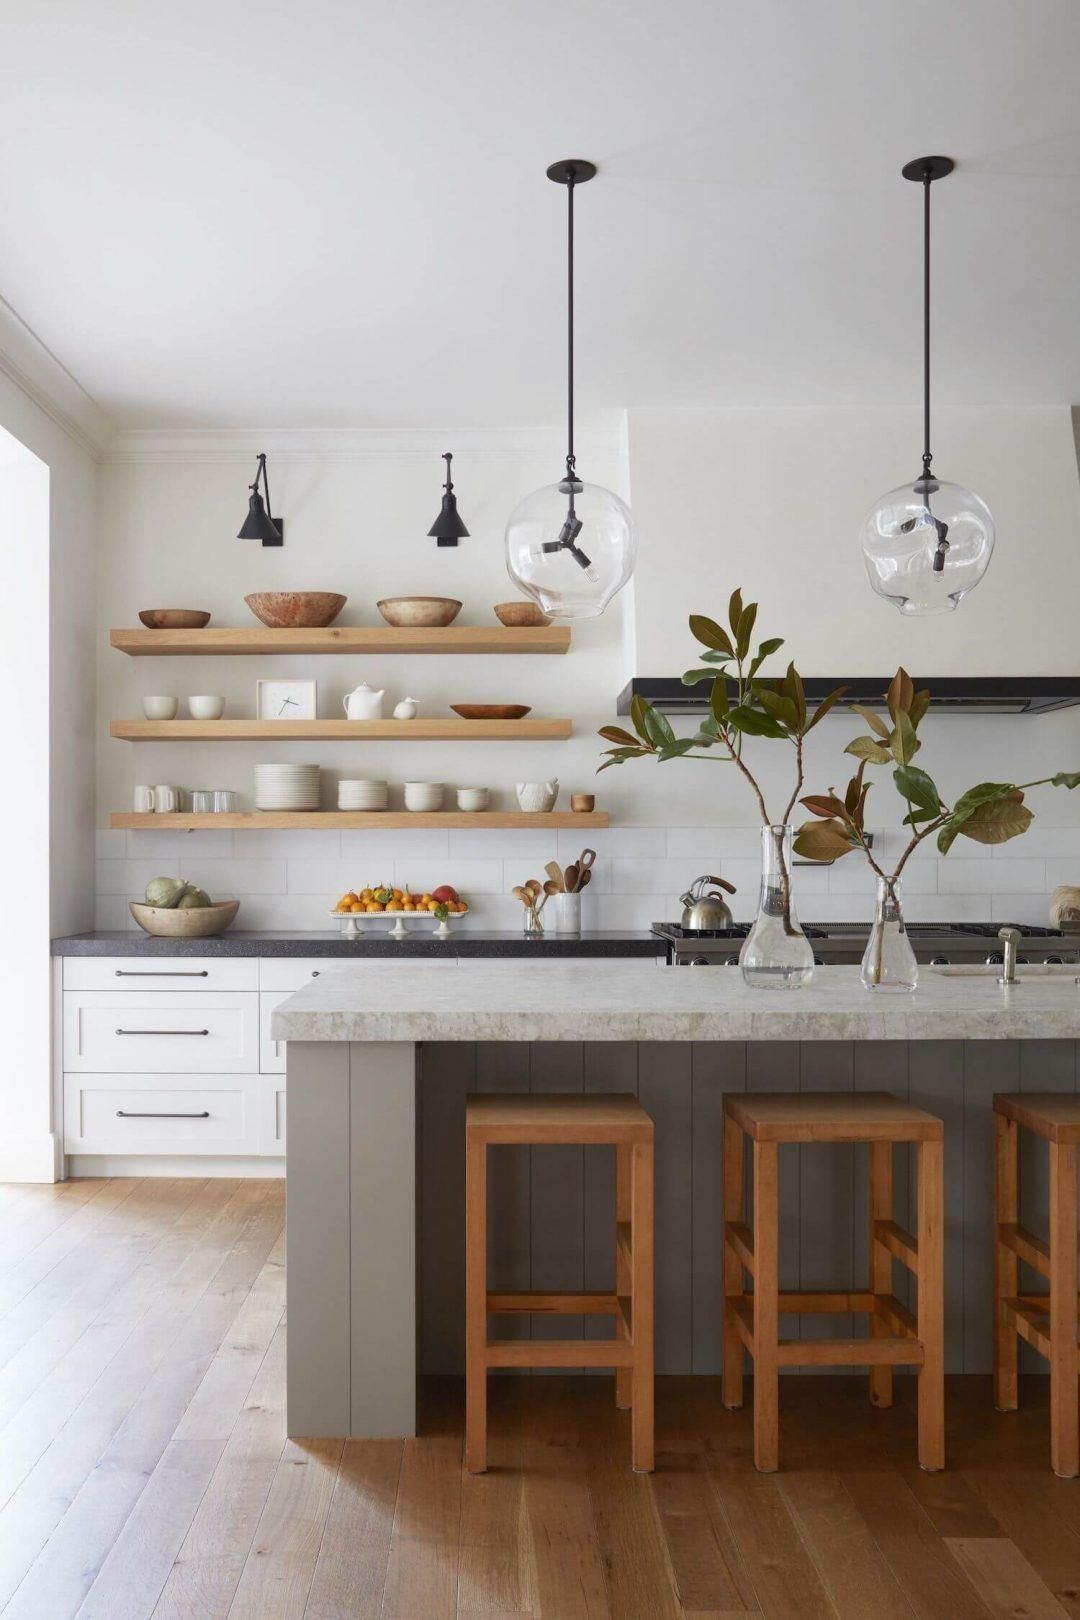 25 Mid Century Modern Kitchen Ideas To Beautify Your Cooking Area - Eda8B60857Db984C7F326204Fcefff62